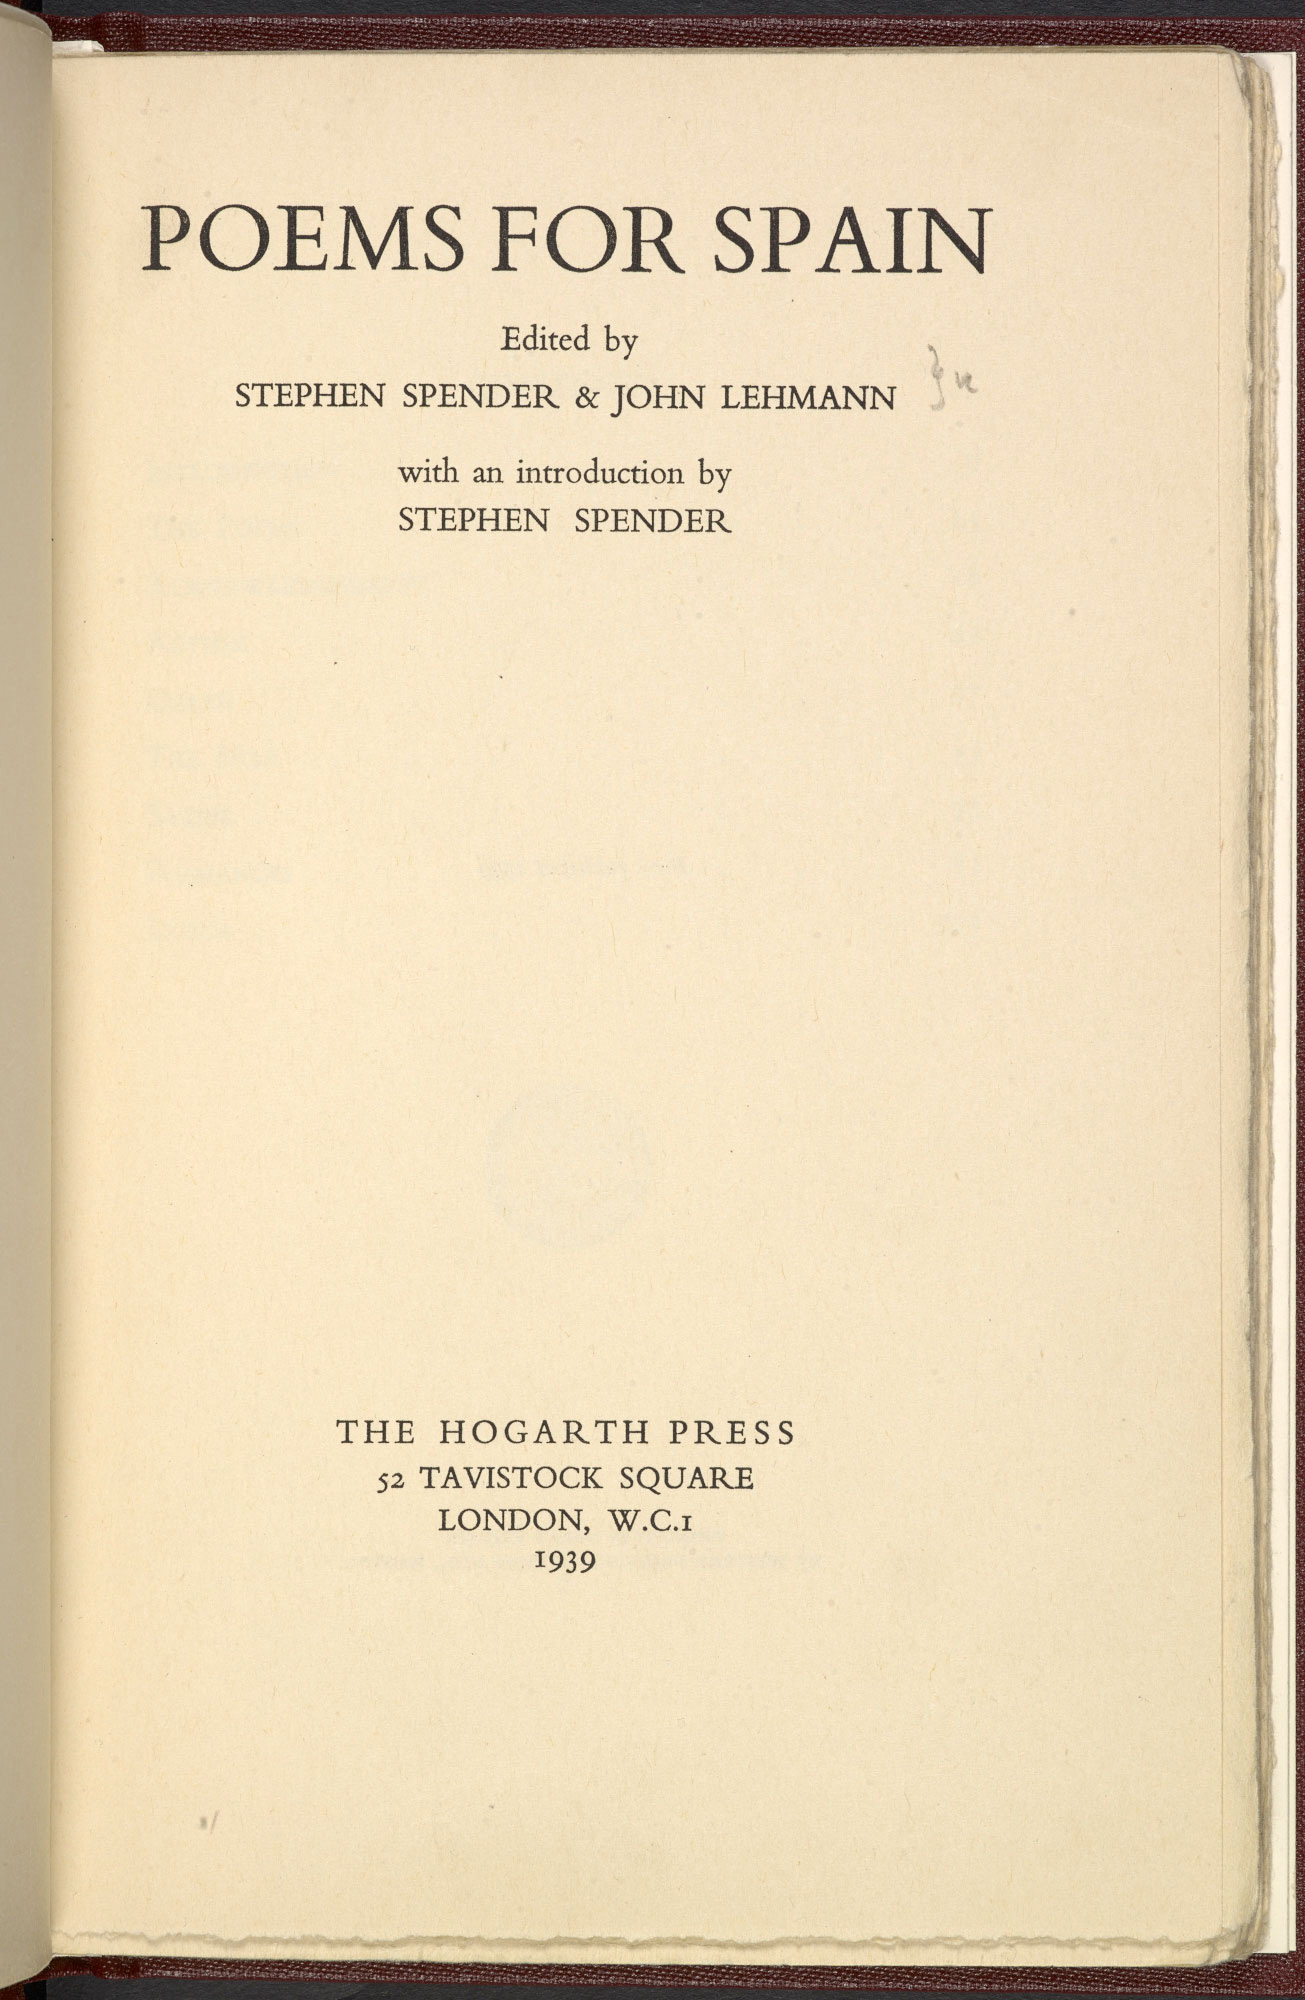 Poems for Spain, edited by Stephen Spender and John Lehmann - The British  Library